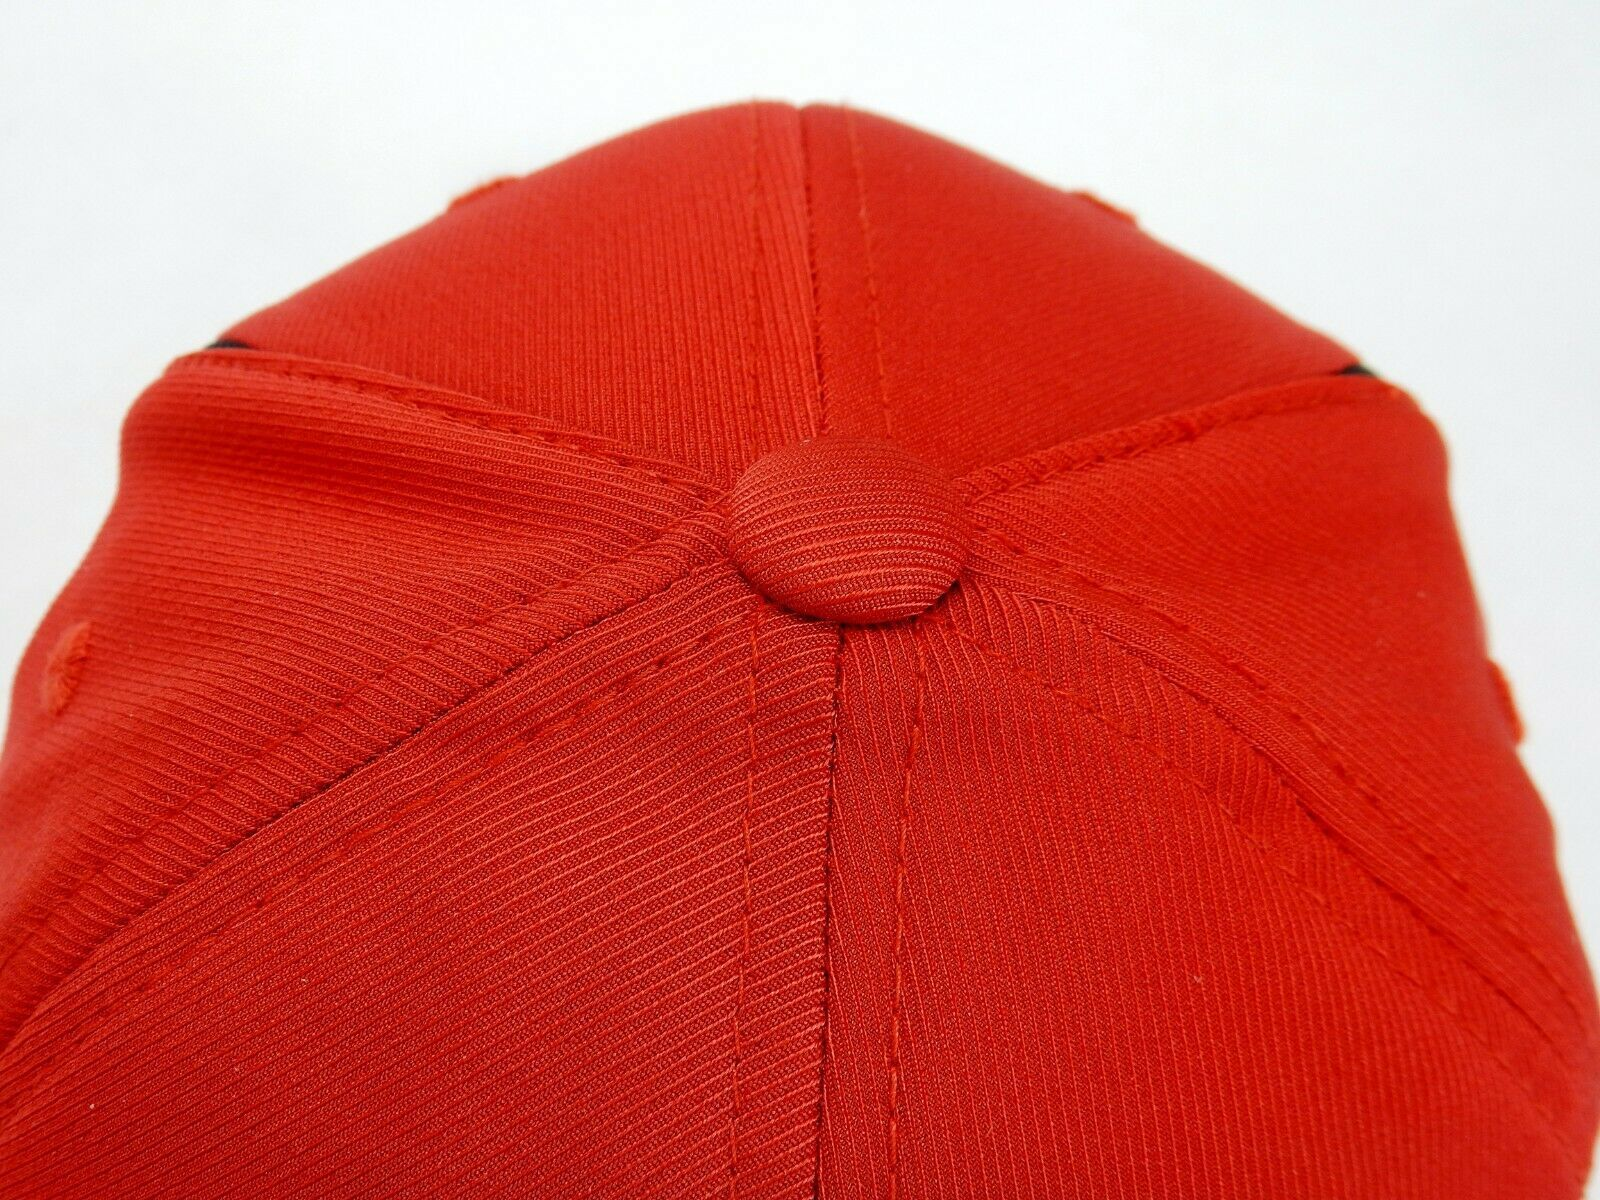 6 Panel Baseball Cap, Solid Colors With Accent Strips, S/M or L/X, FlexFit #6599